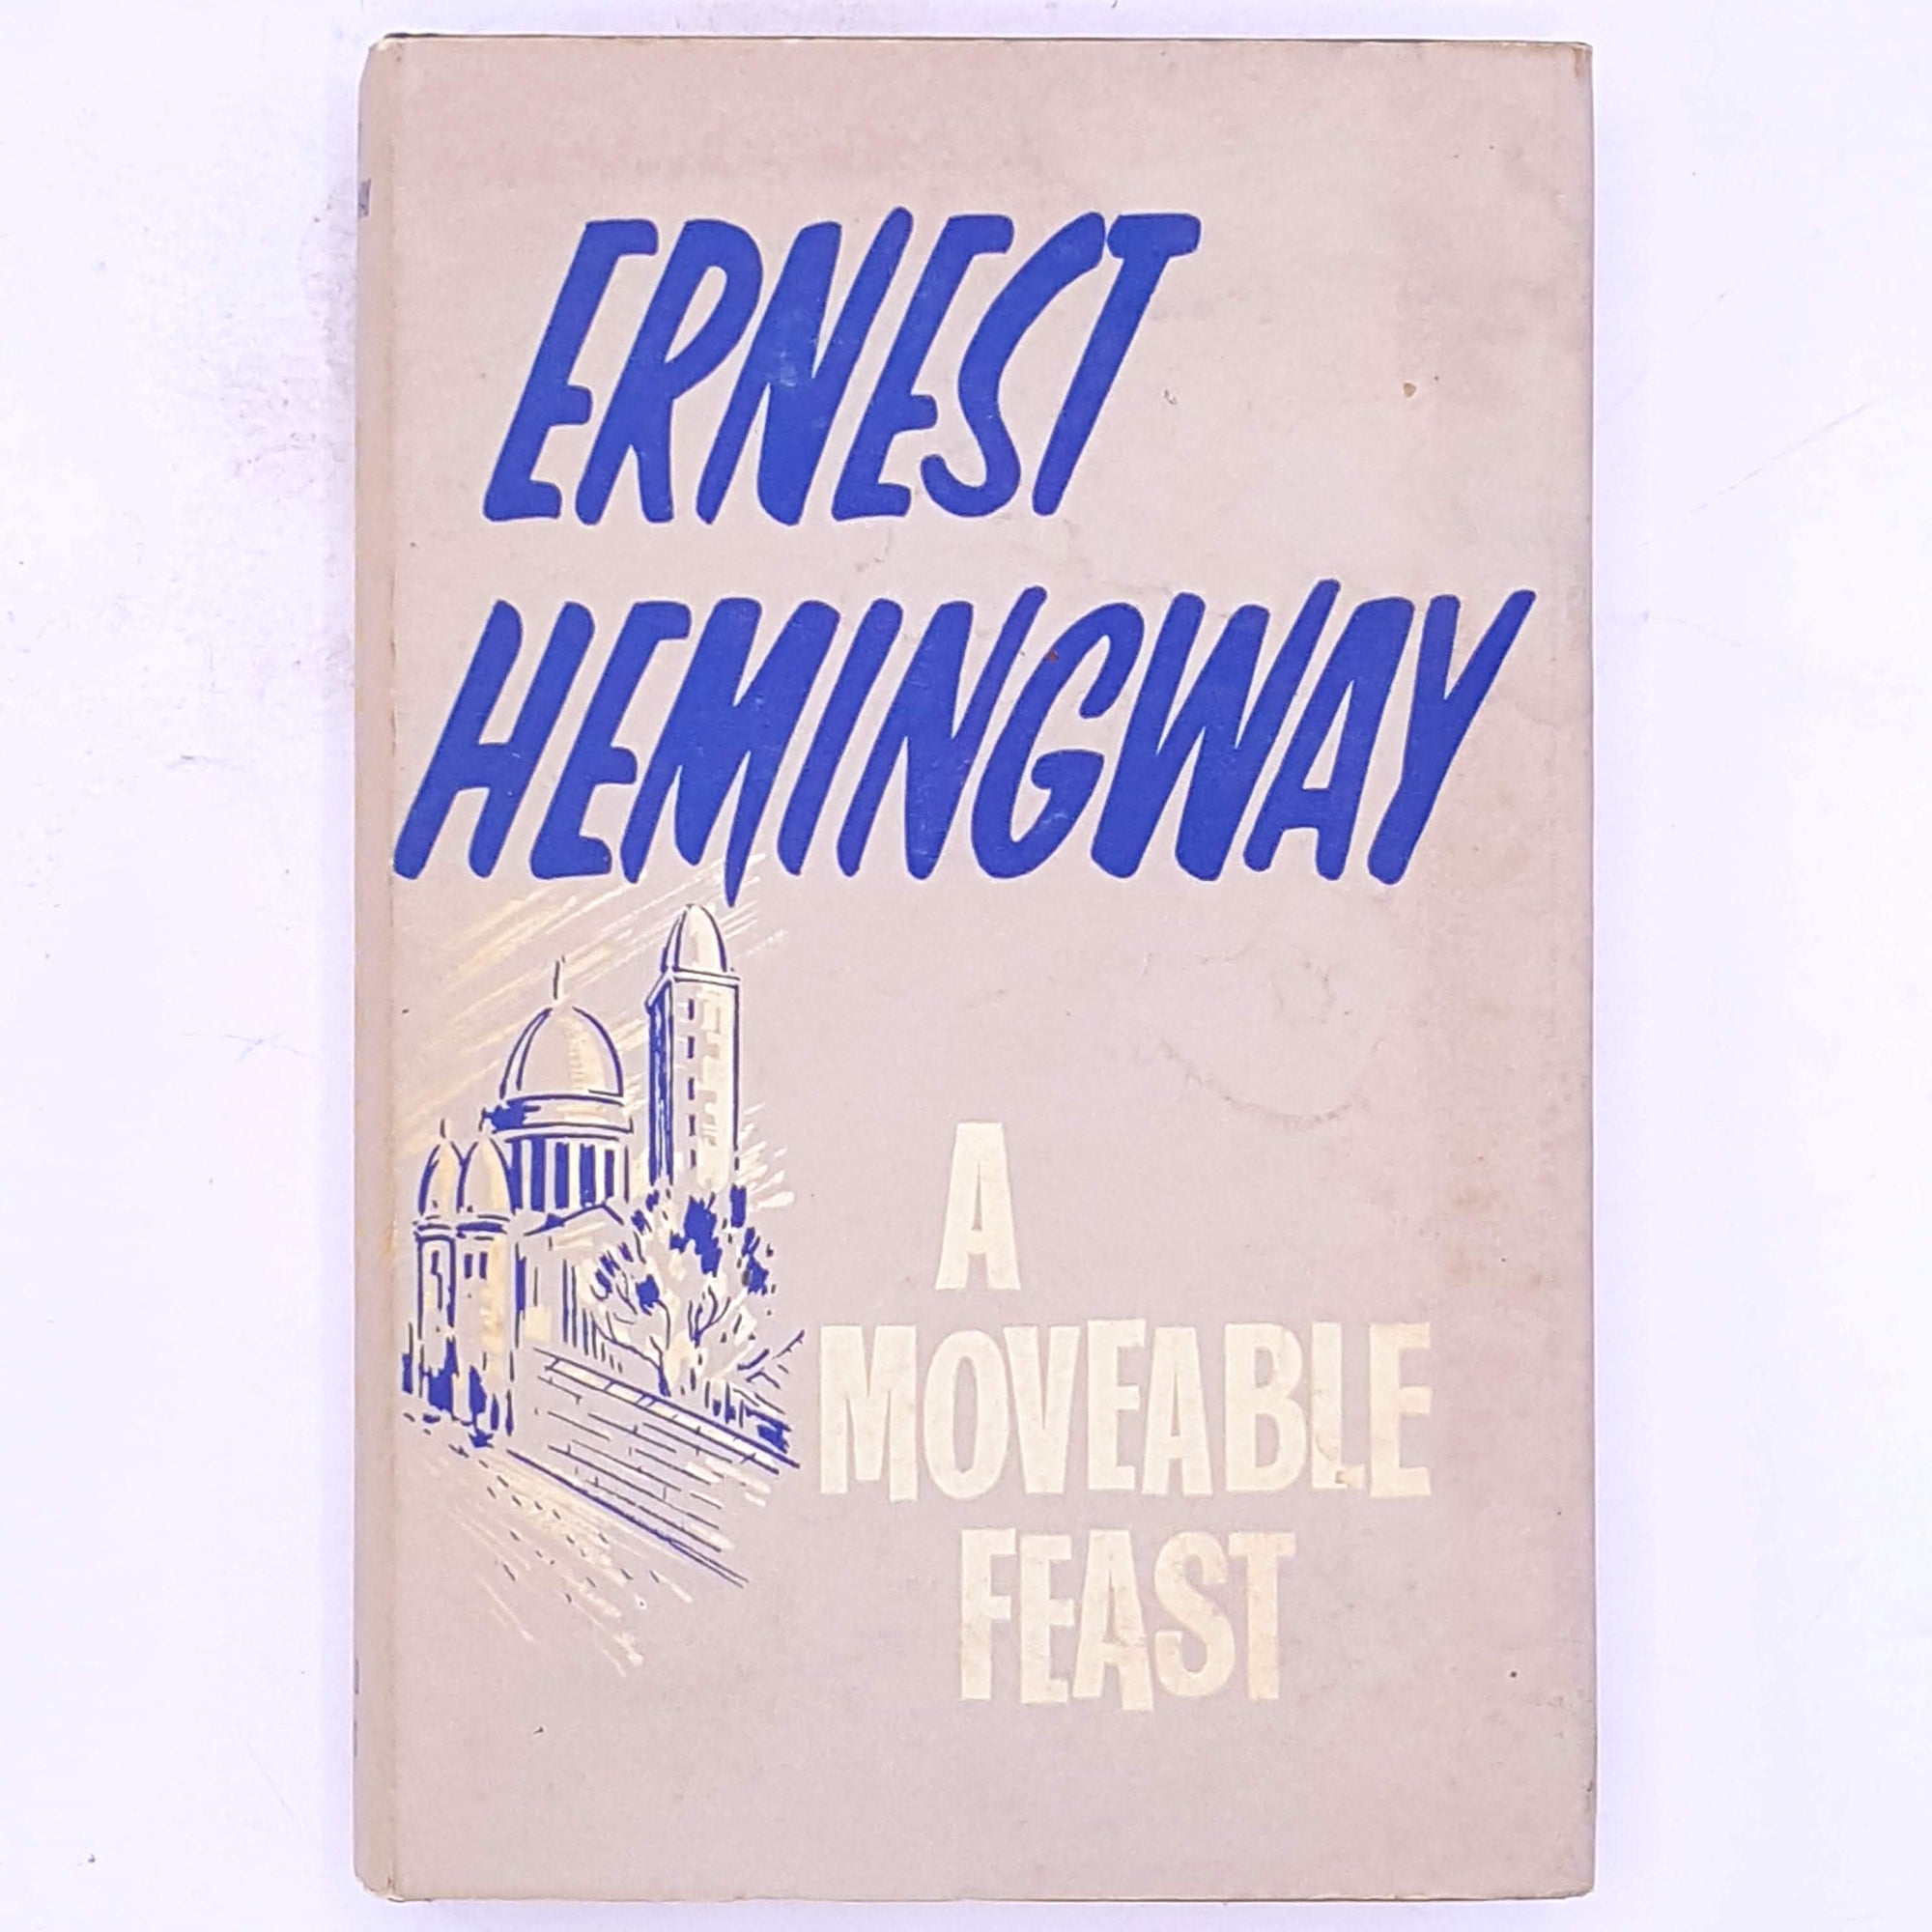 decorative-thrift-books-antique-vintage-old-classic-Ernest-Hemingway-A-Moveable-Feast-country-house-library-patterned-